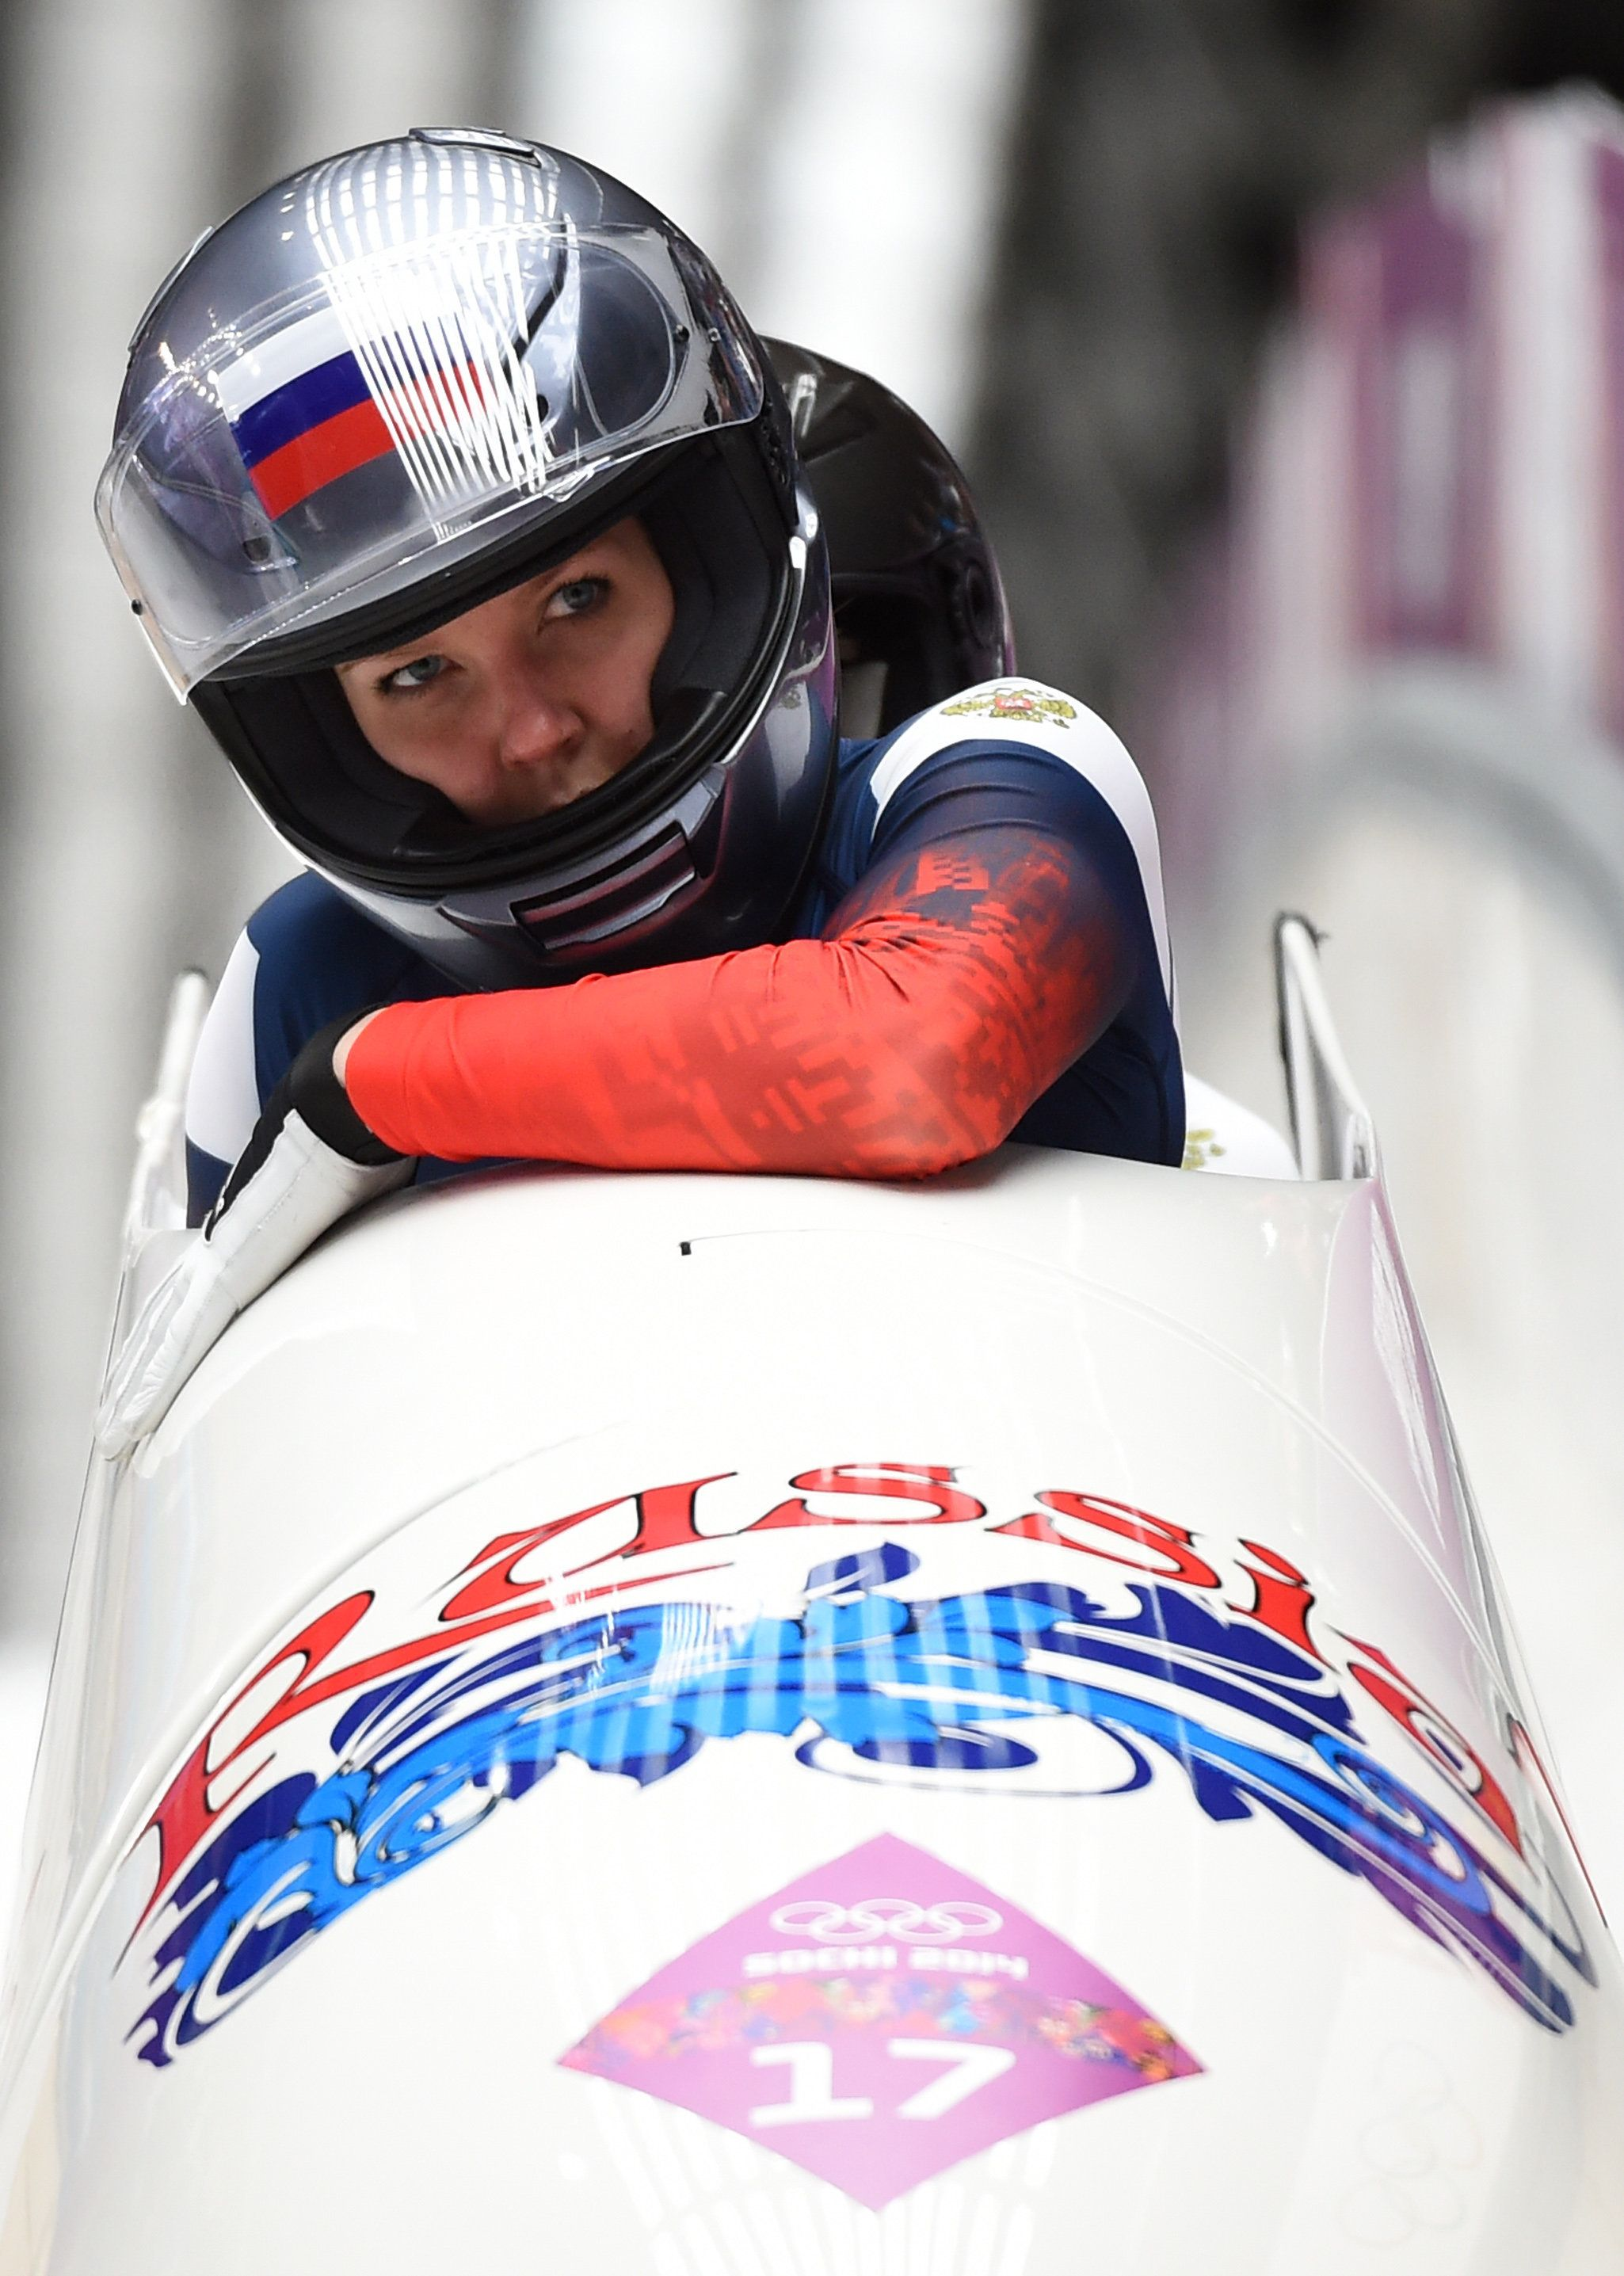 Russia-2 two-woman bobsleigh pilot Nadezhda Sergeeva and brakewoman Nadezhda Paleeva compete in the Women's Bobsleigh Heat 4 and final run at the Sliding Center Sanki during the Sochi Winter Olympics on February 19, 2014.     AFP PHOTO / LEON NEAL        (Photo credit should read LEON NEAL/AFP/Getty Images)